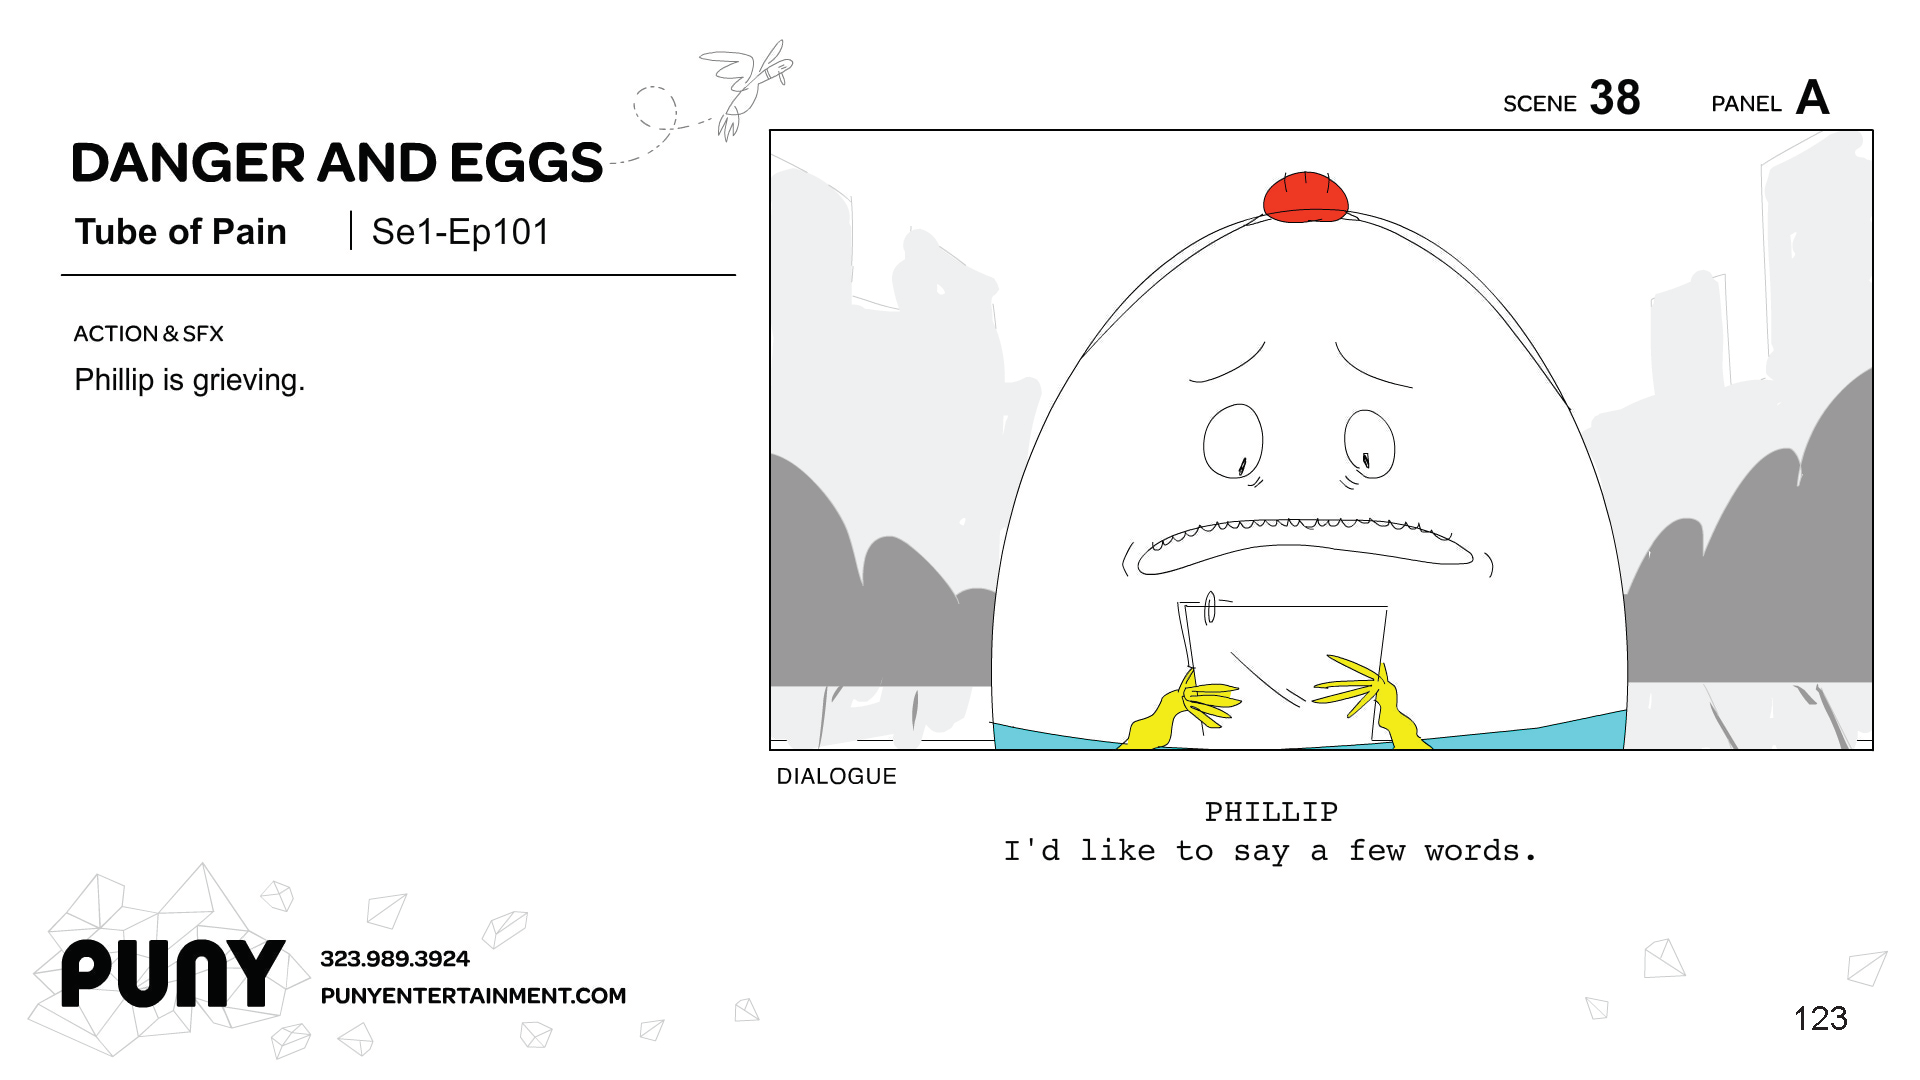 MikeOwens_STORYBOARDS_DangerAndEggs_Page_123.png